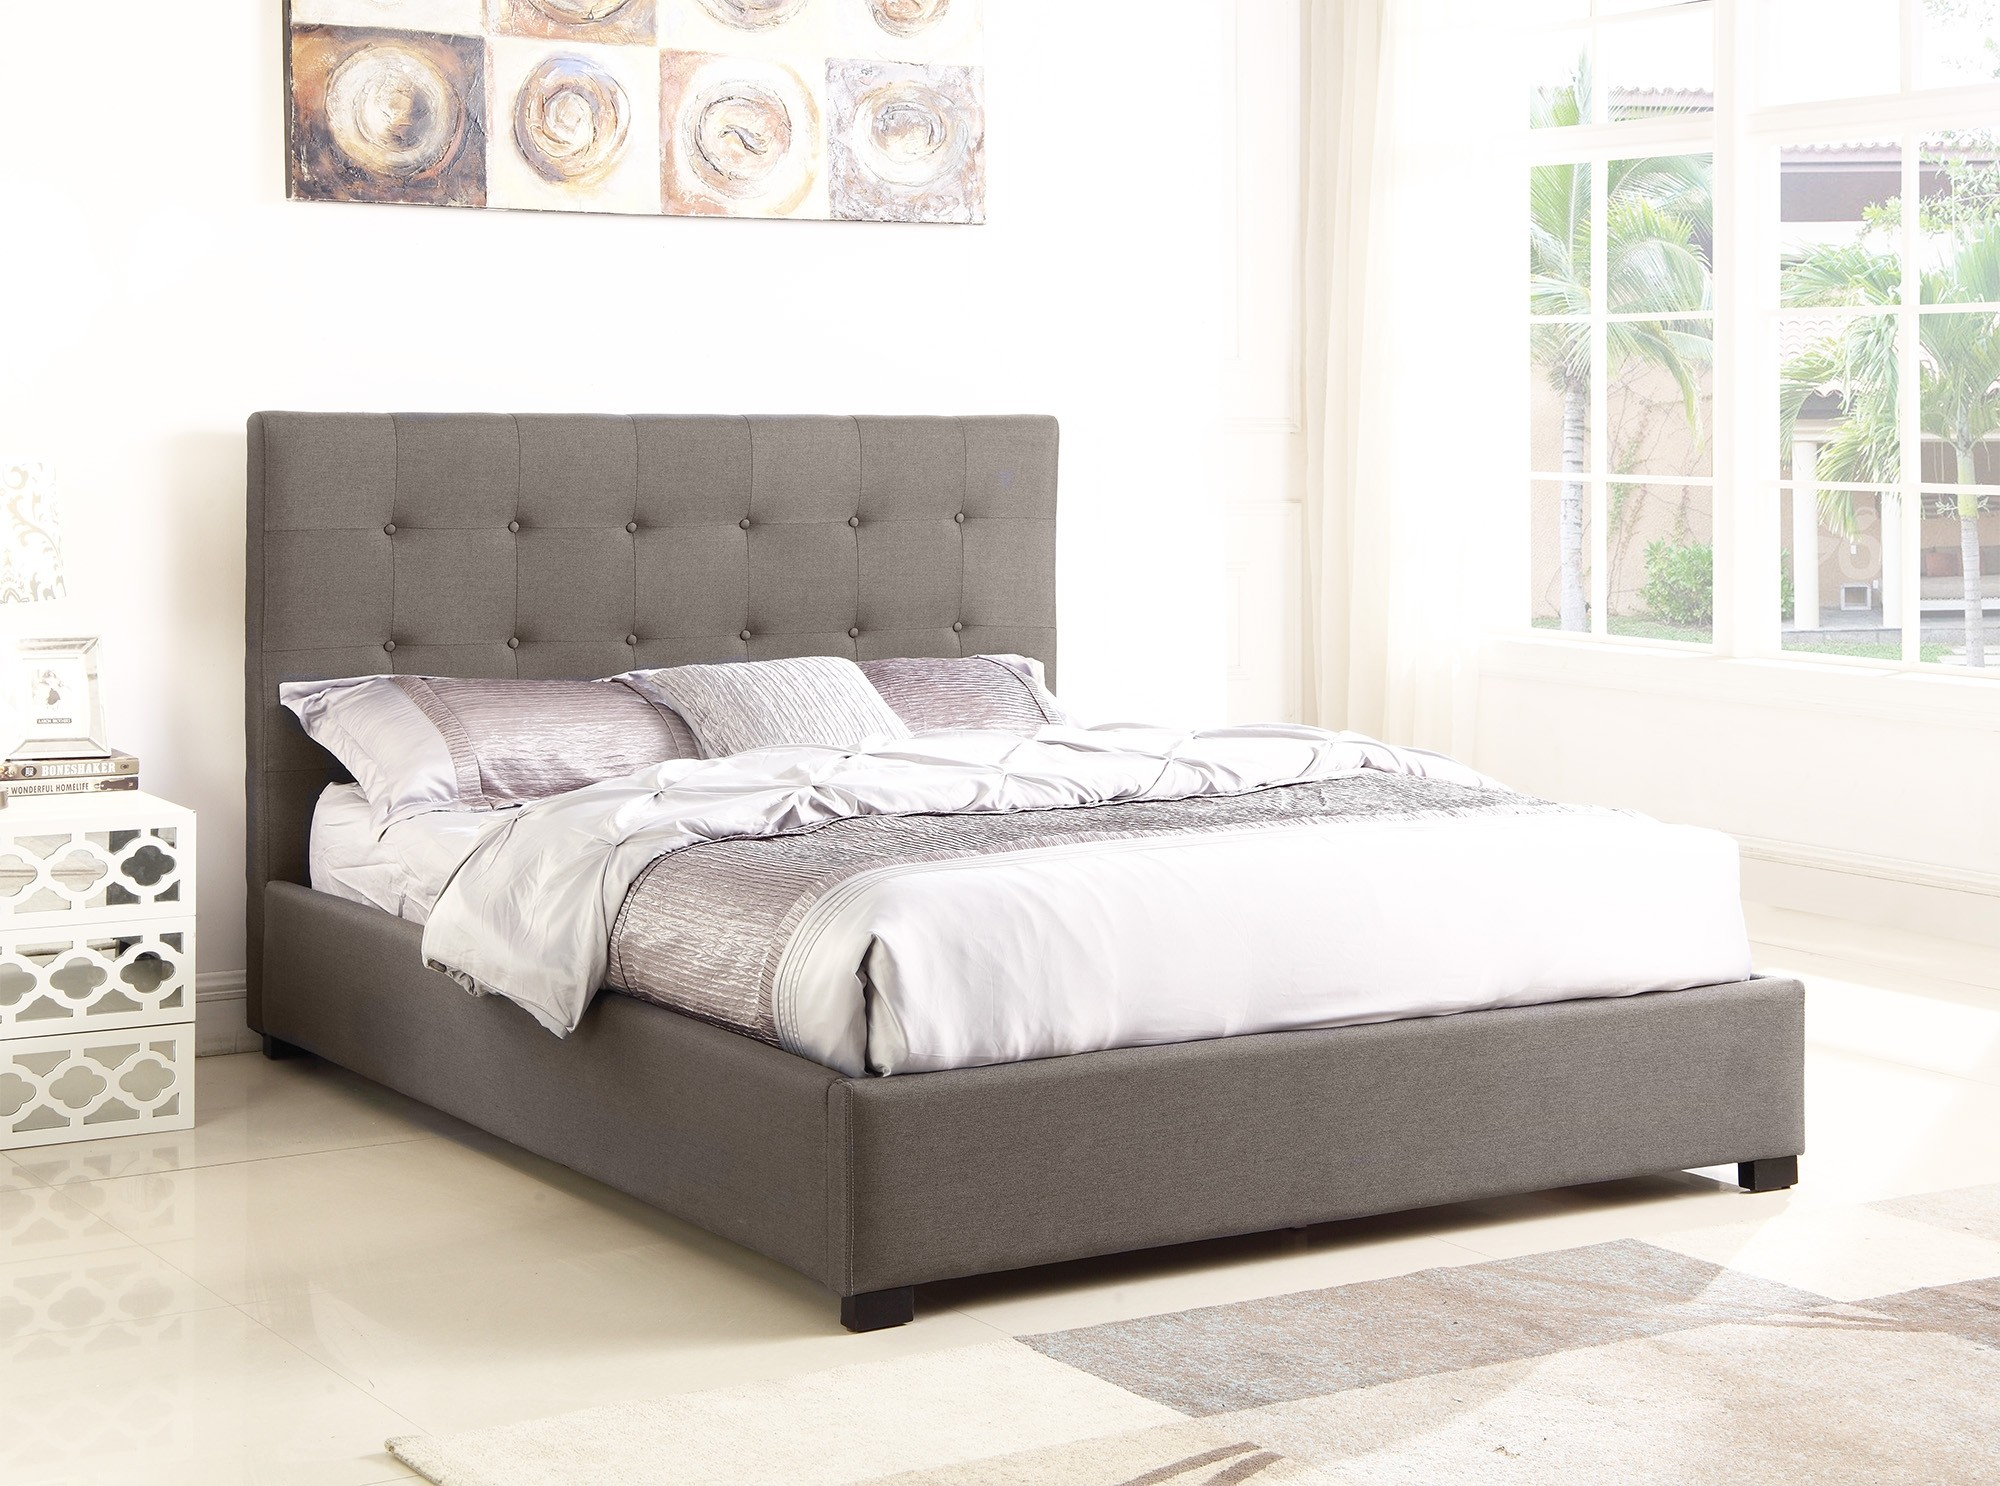 lit coffre layton sommier 160cm tissu taupe lits 2 places. Black Bedroom Furniture Sets. Home Design Ideas